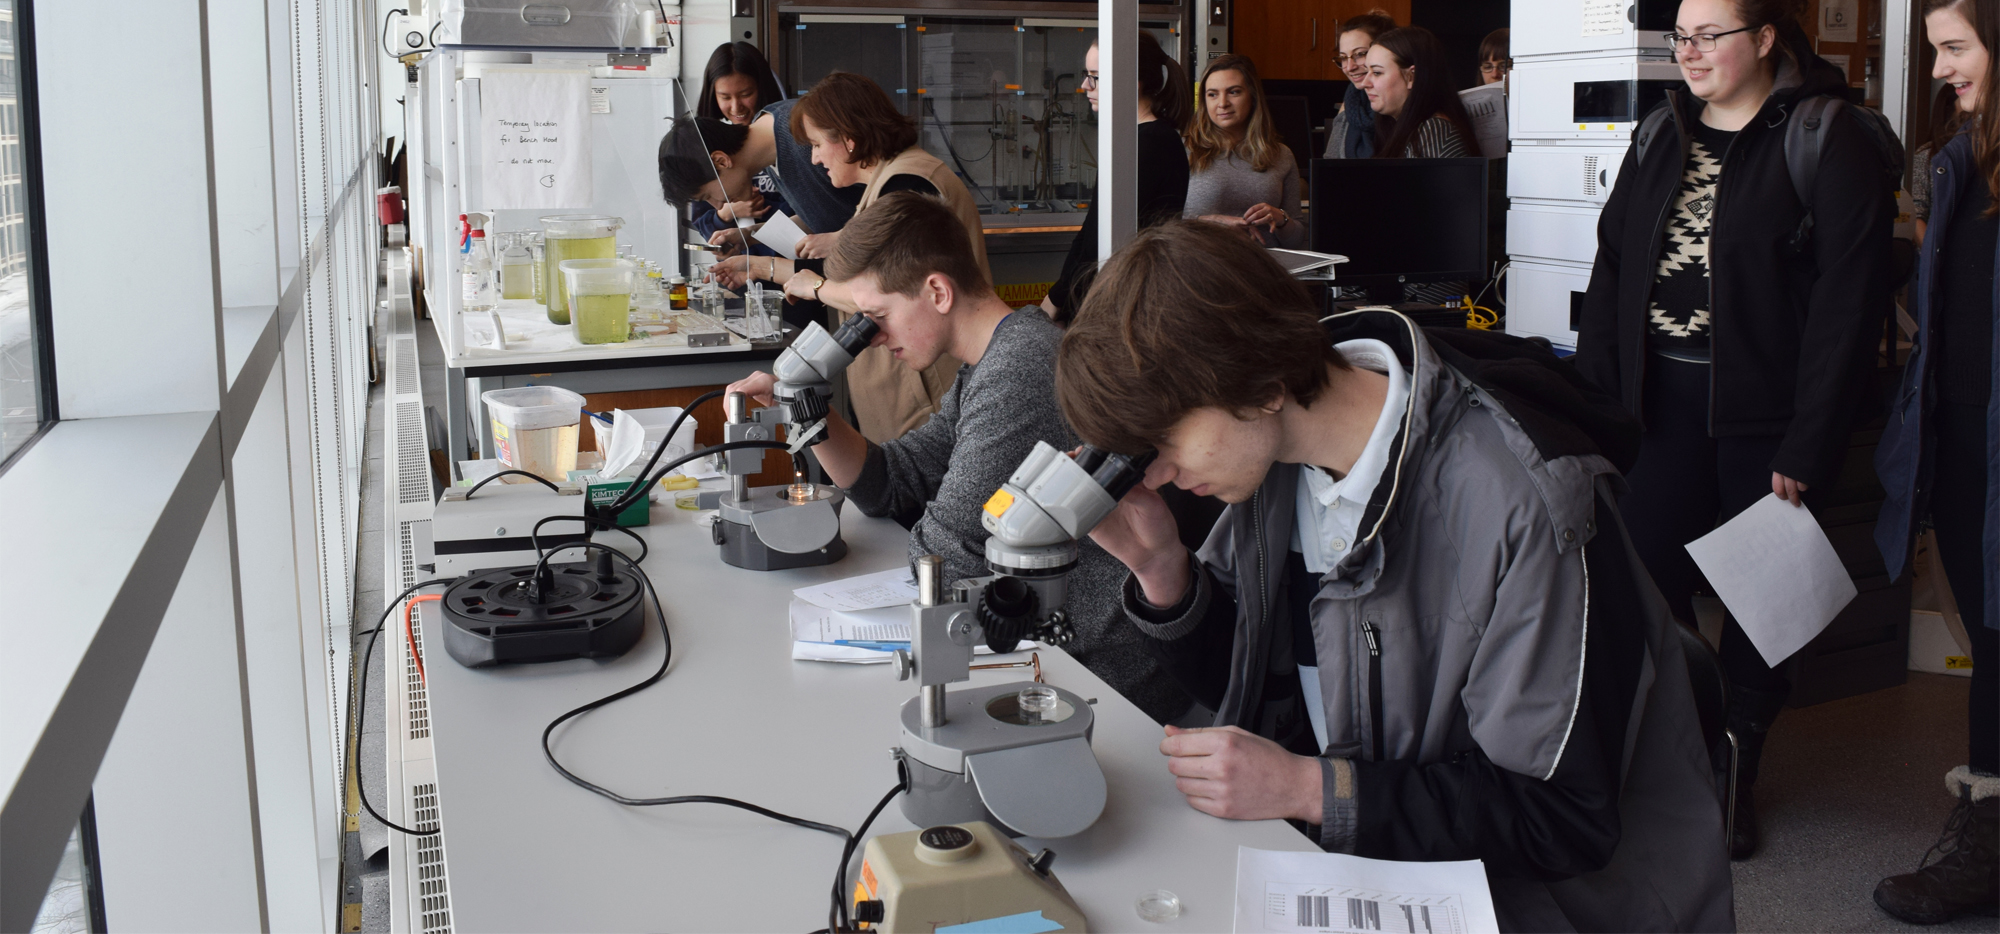 Anthropology students touring pharmacy labs and using microscopes